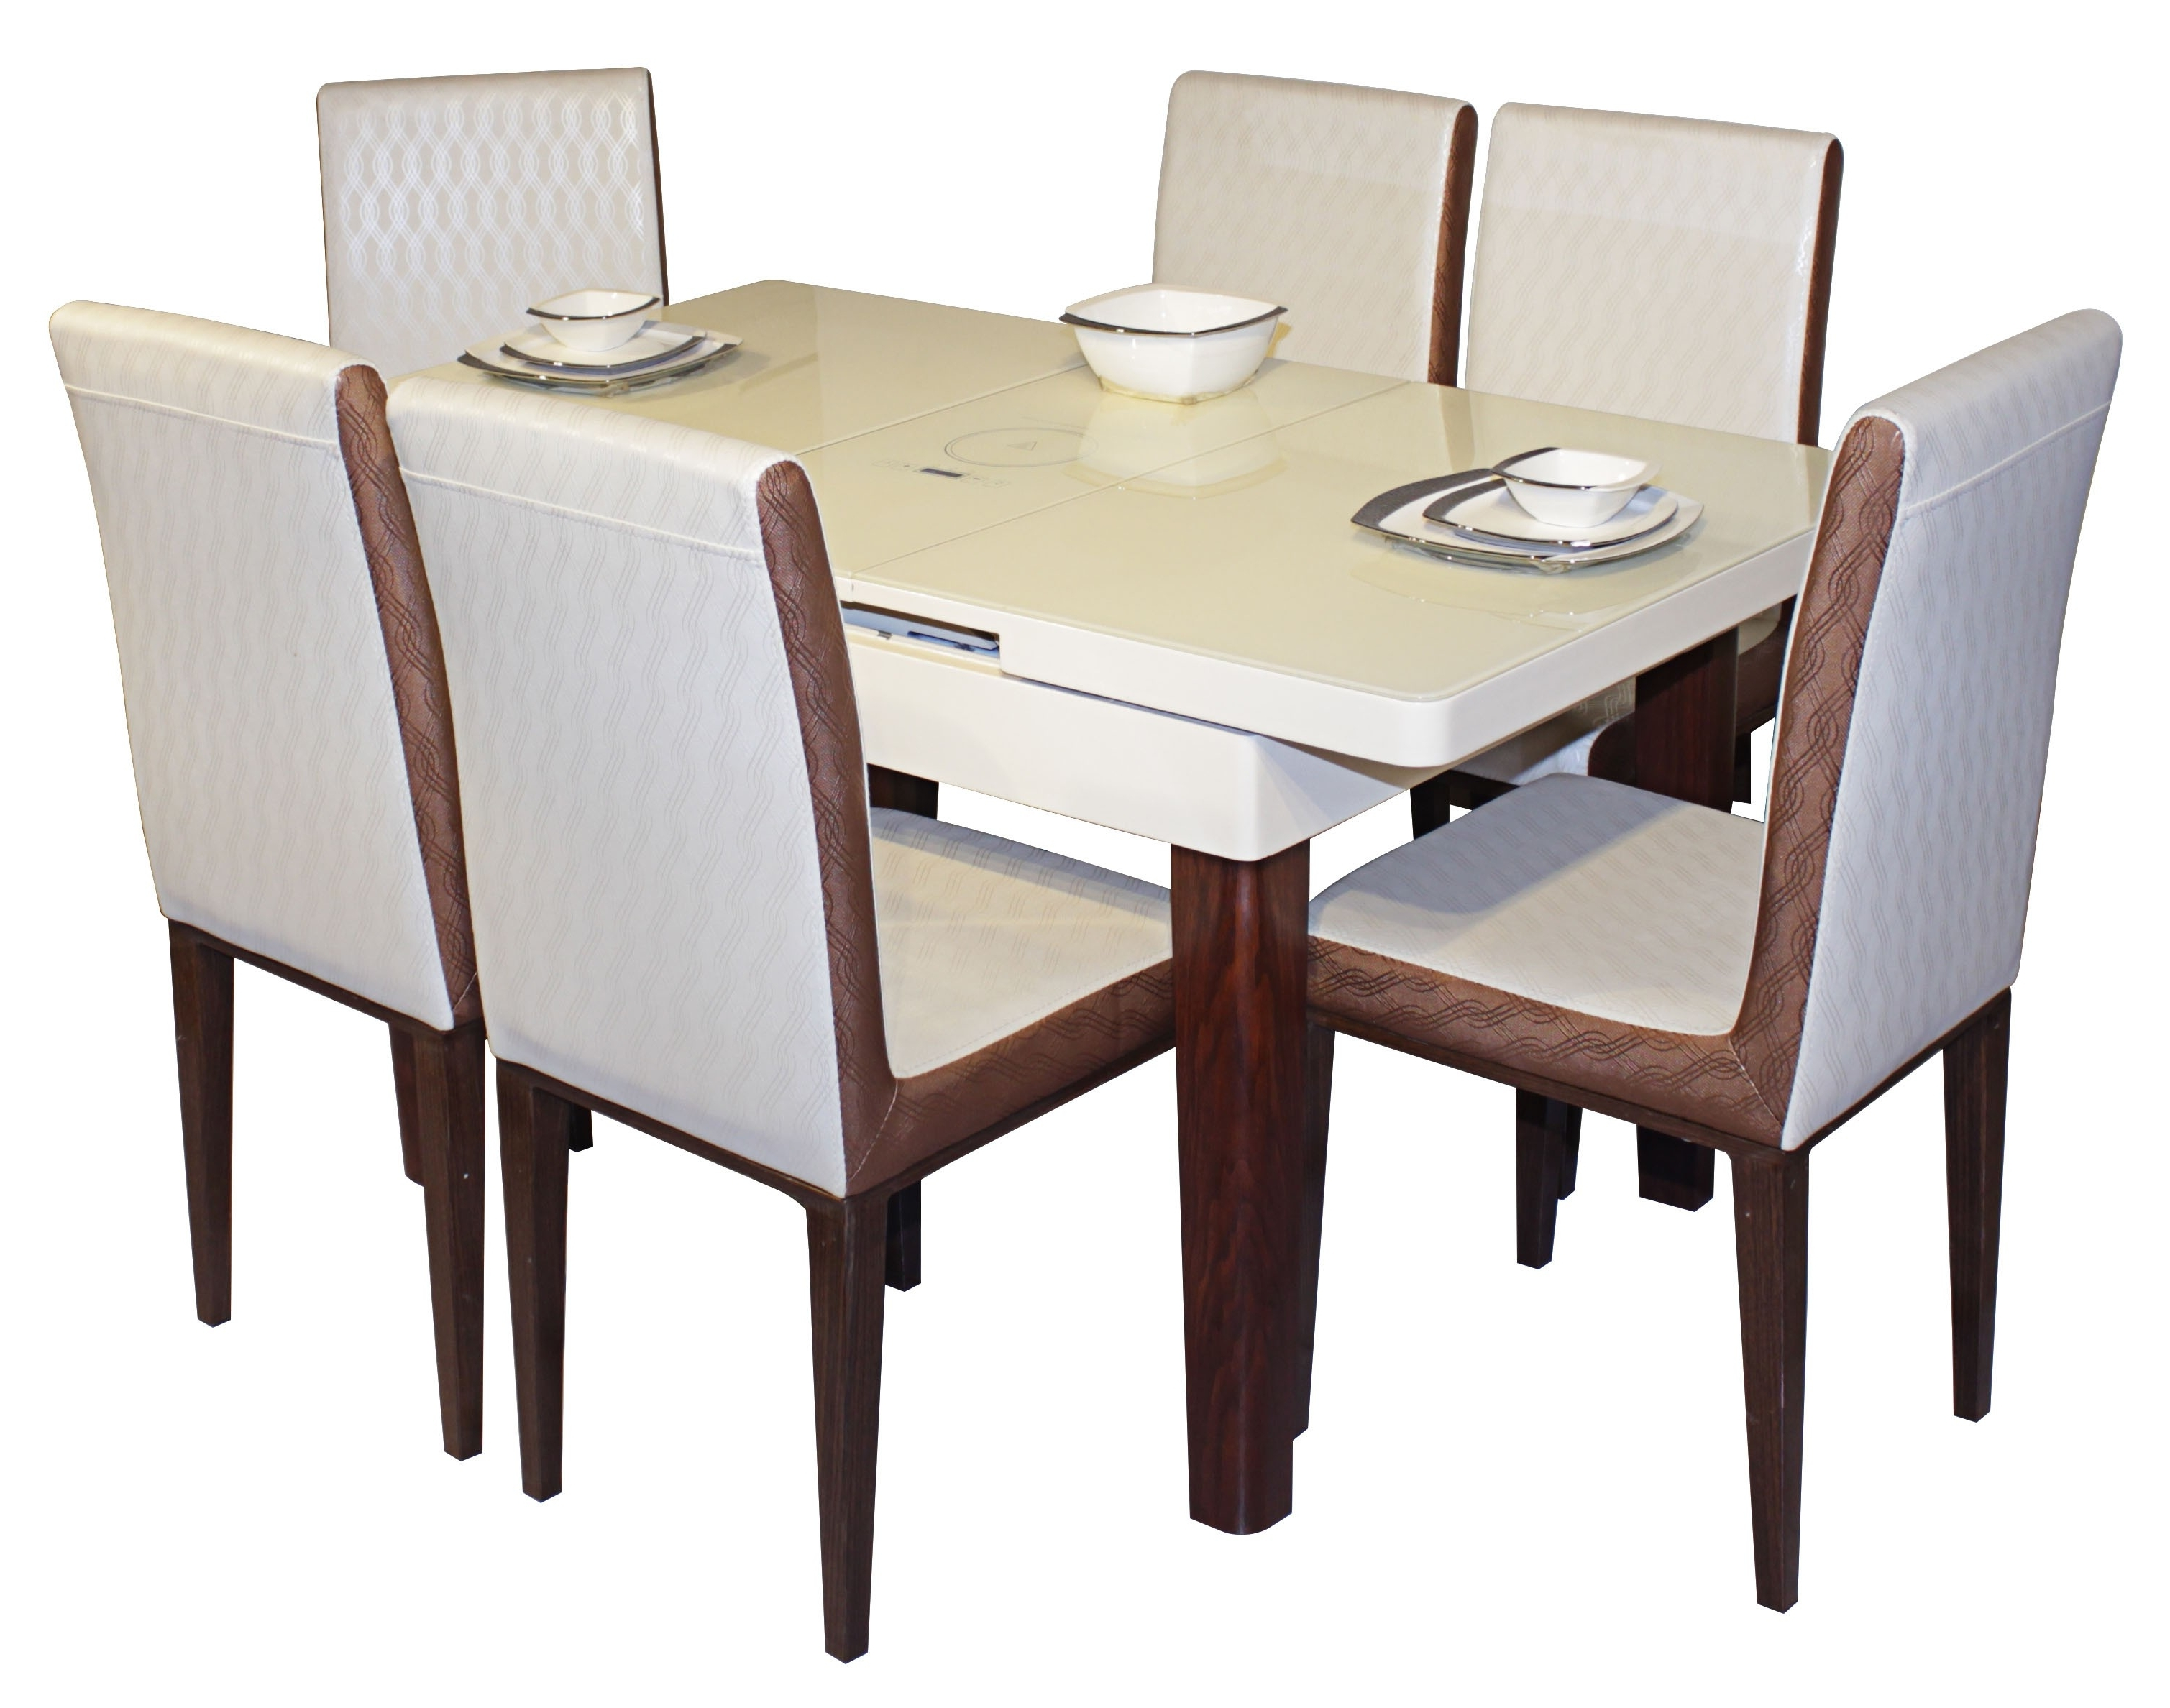 Best And Newest Galassia 6 Seater Dining Table Set Within Cheap 6 Seater Dining Tables And Chairs (View 5 of 25)